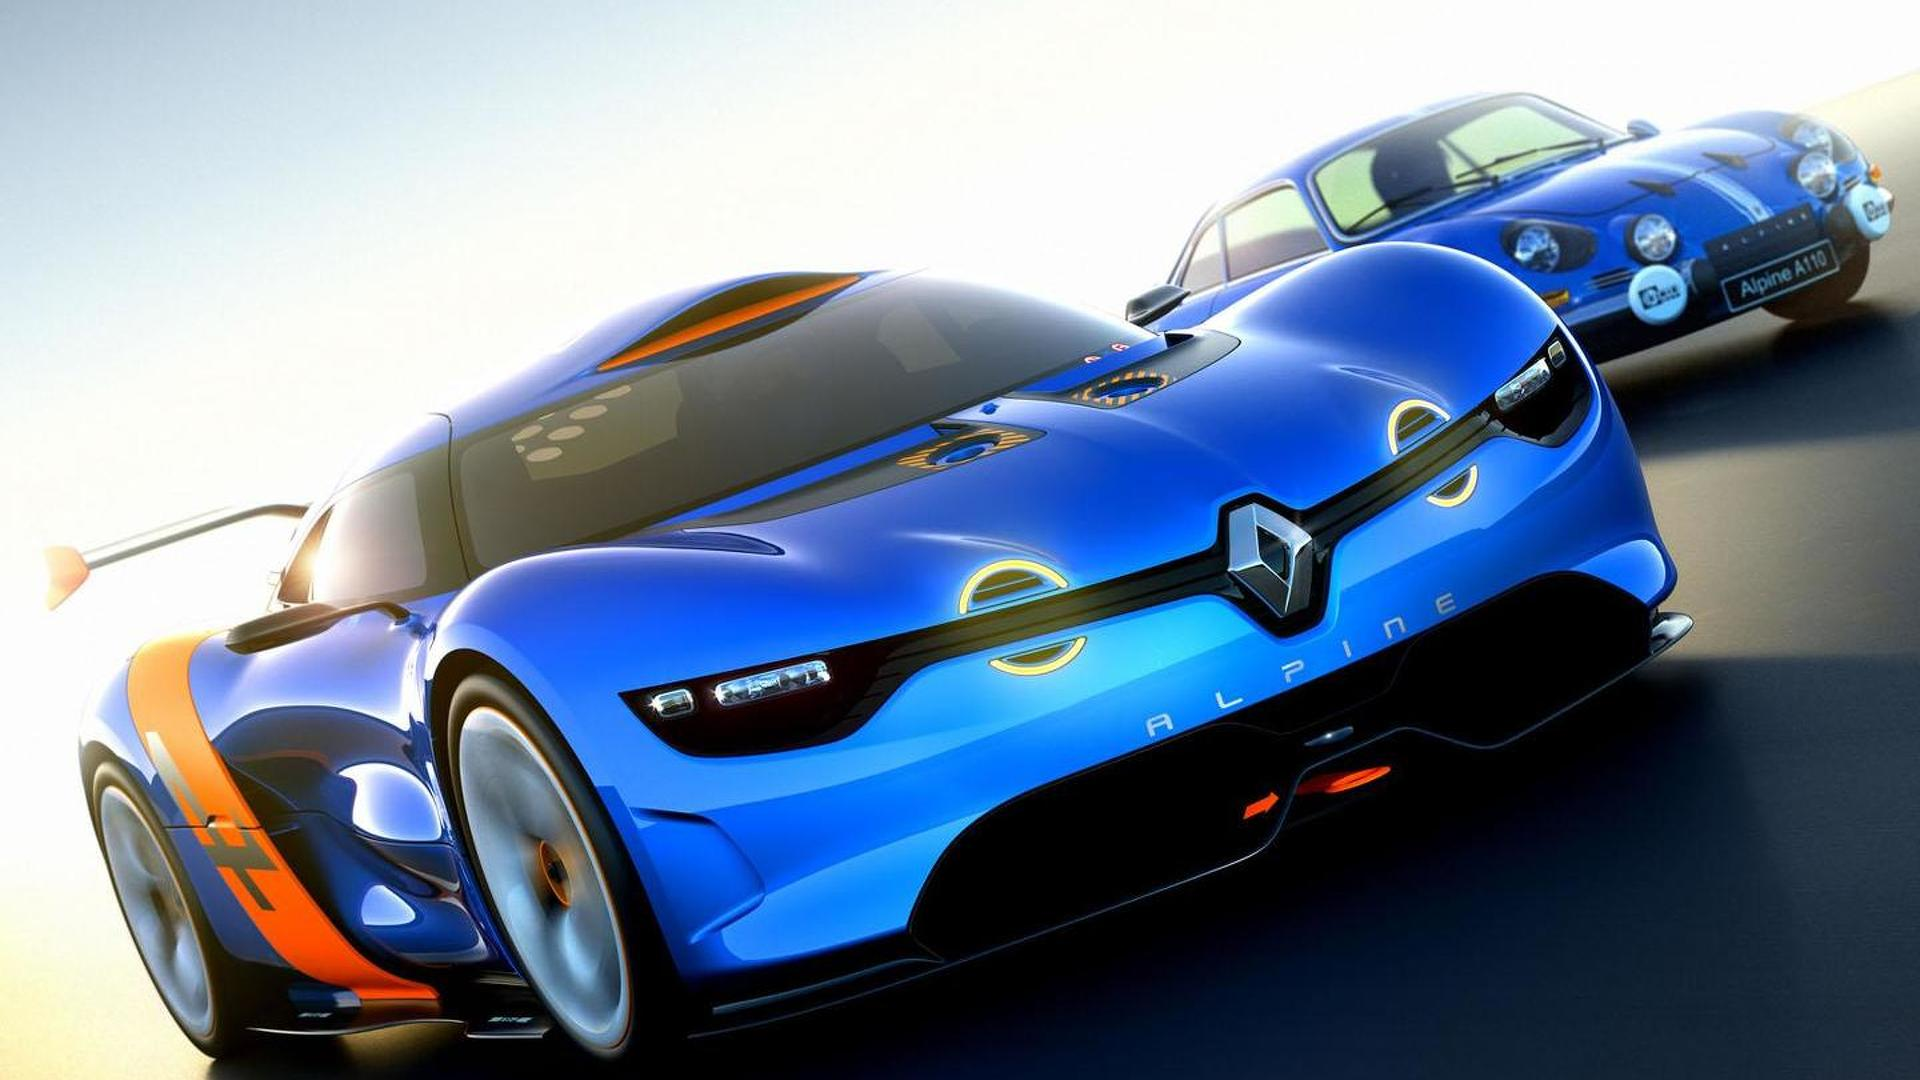 Renault Alpine under development, production could be announced shortly - report